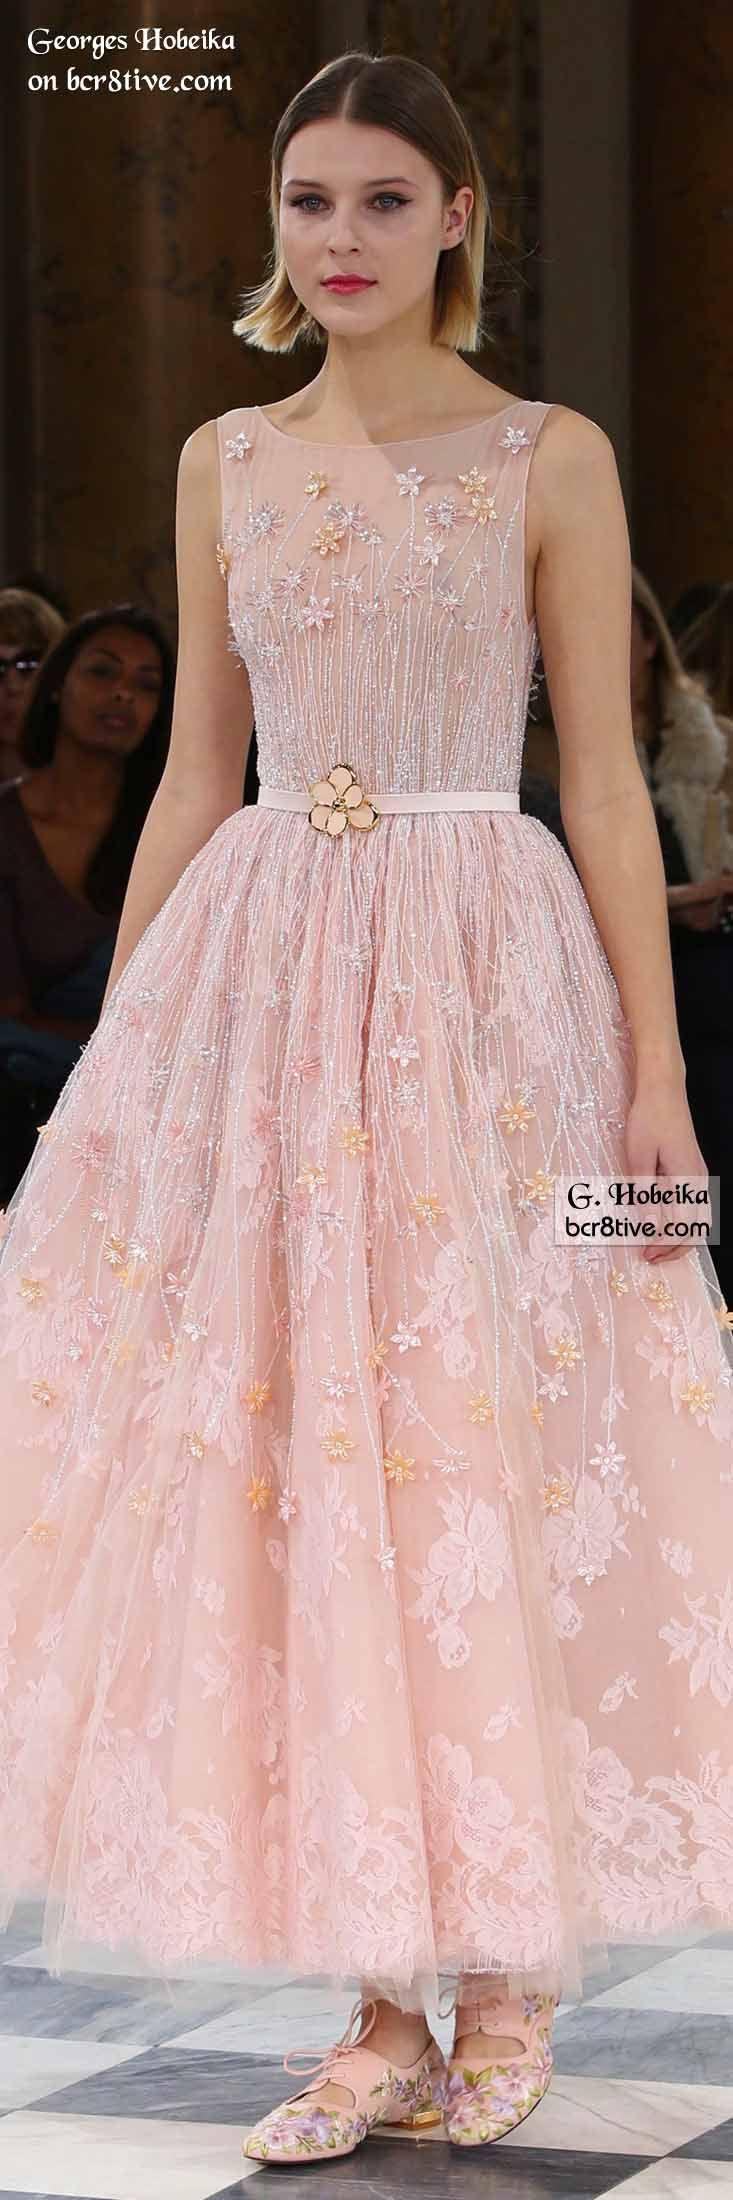 188 best dress images on Pinterest | Evening gowns, Casual gowns and ...